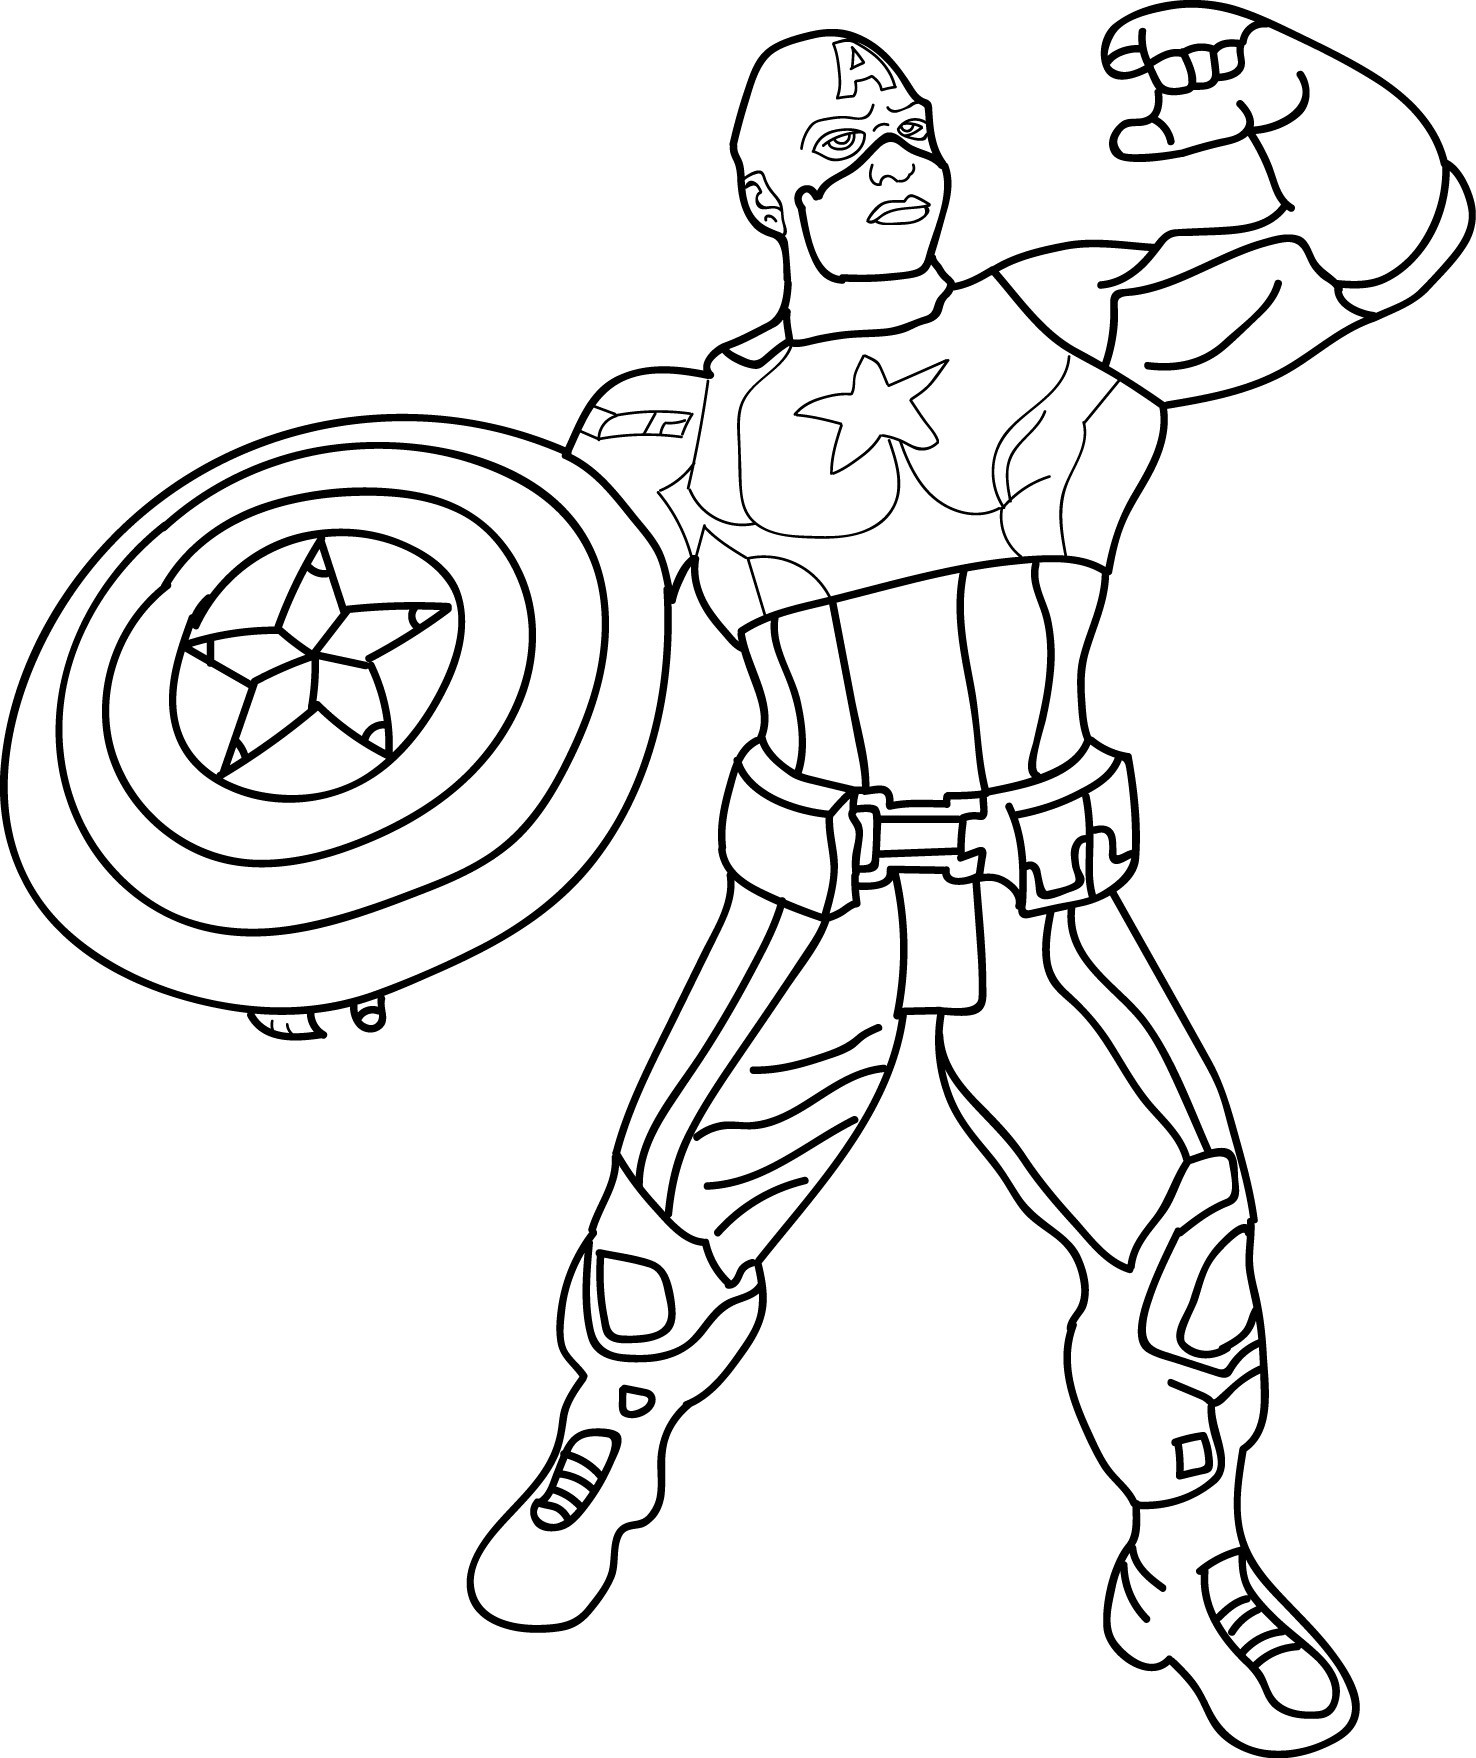 Captain America Lego Coloring Pages At Getcolorings